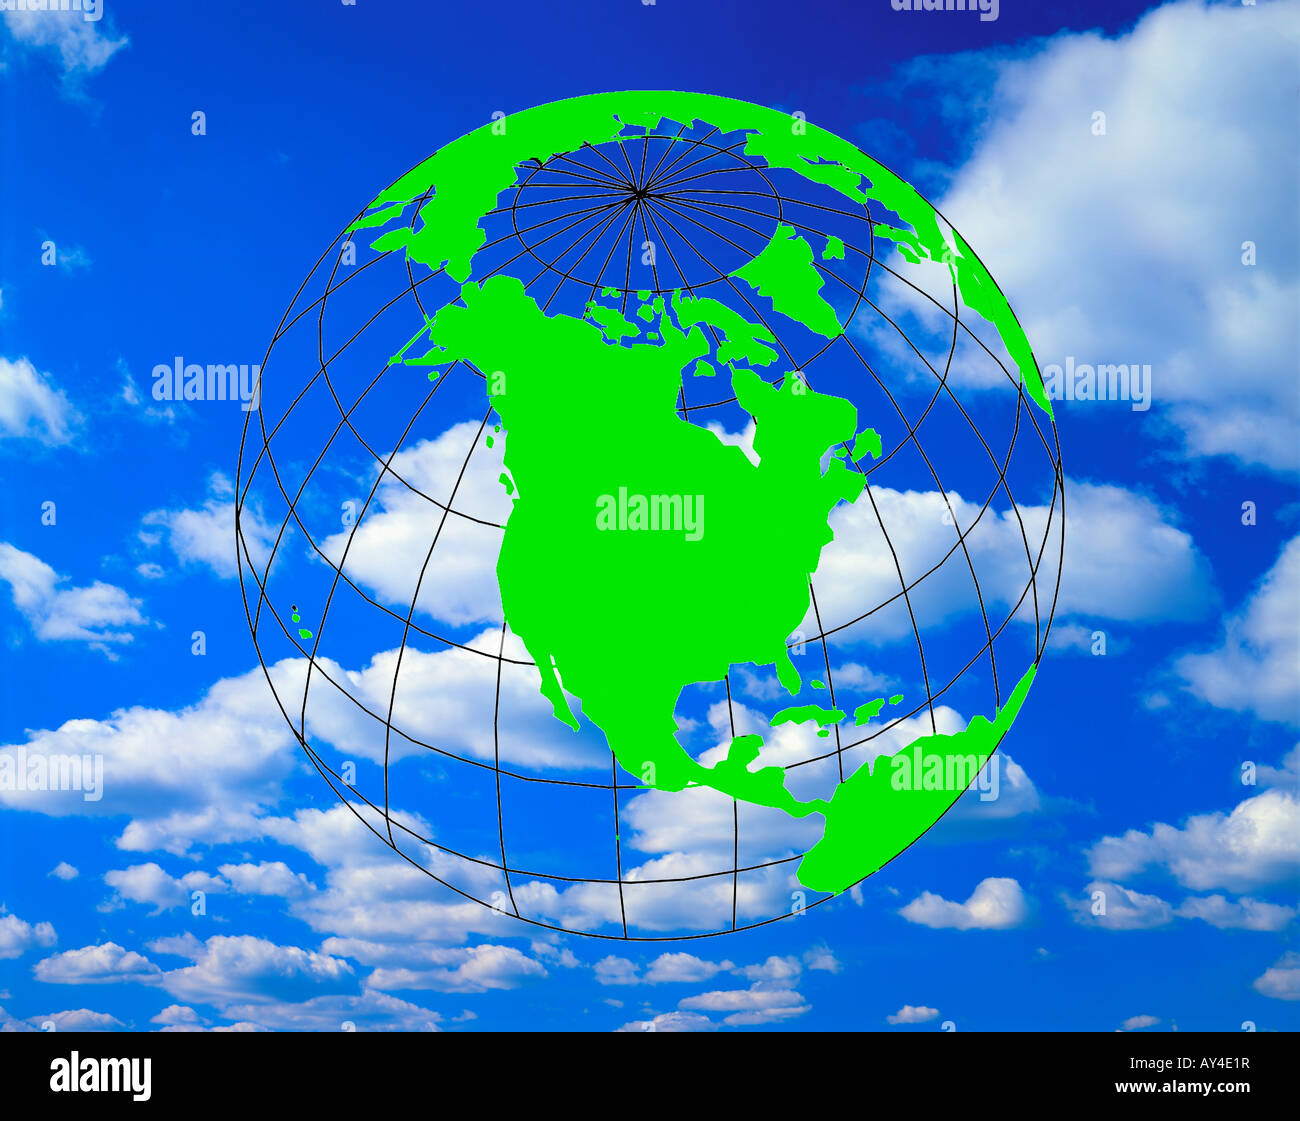 transparent earth globe superimposed on sky and clouds - Stock Image